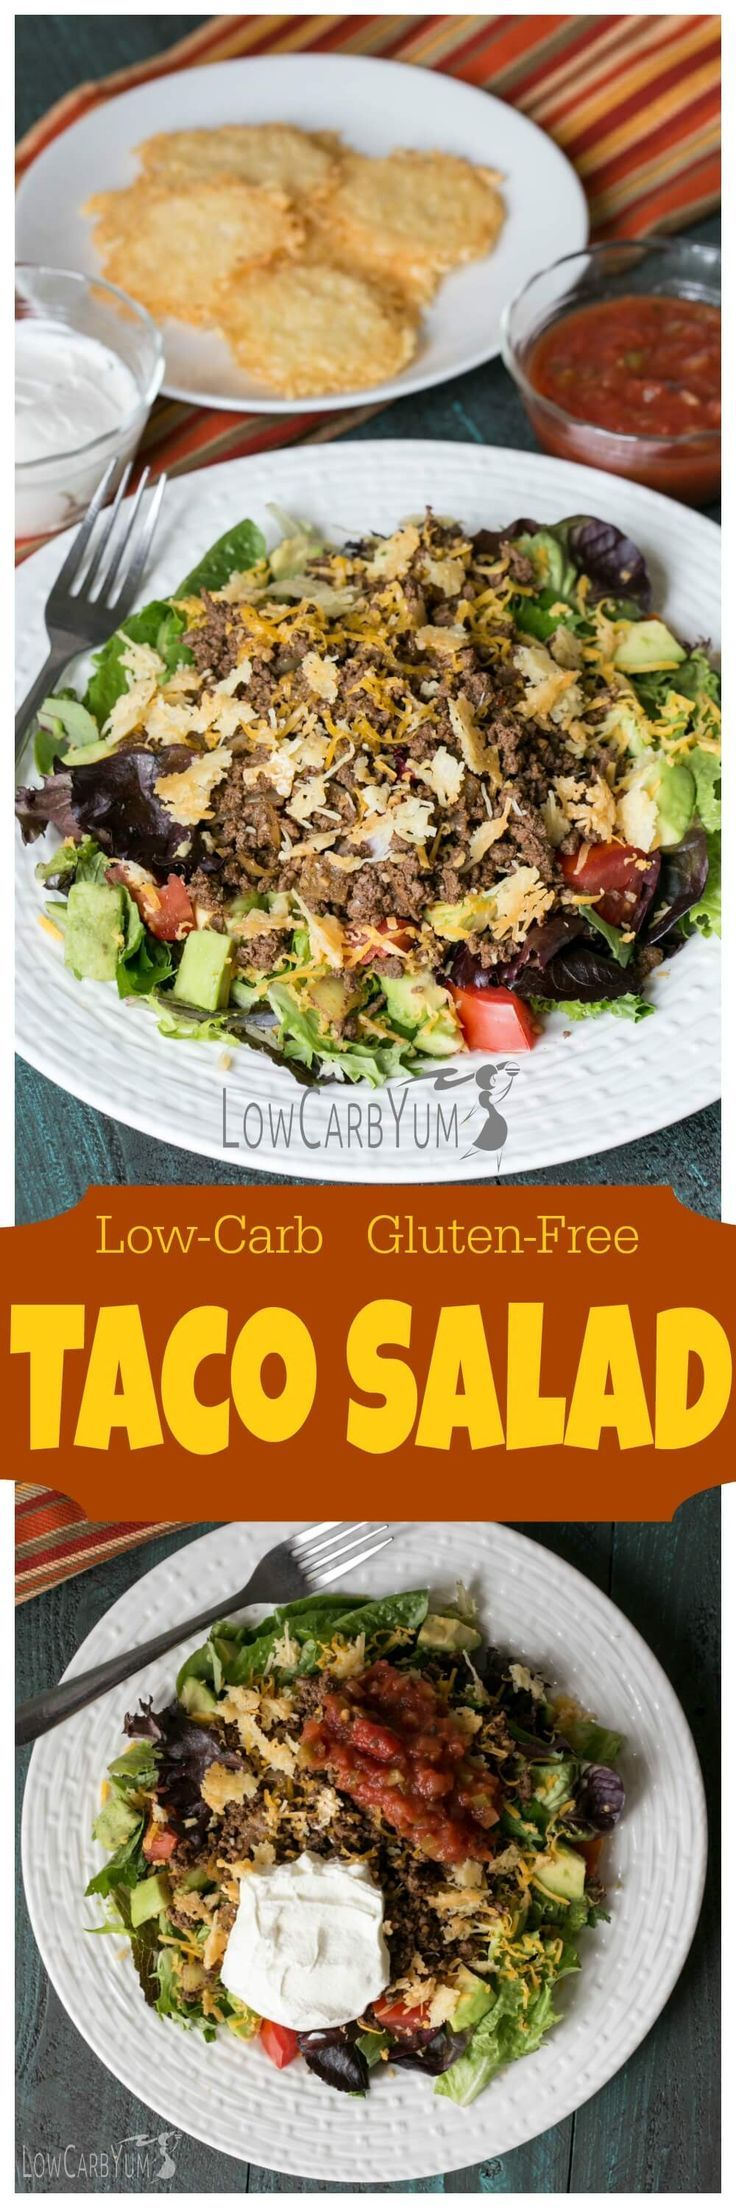 Enjoy the taste of tacos in an easy to make low carb gluten free taco salad. Simply add taco meat and topping to your favorite lettuce mix. | http://LowCarbYum.com